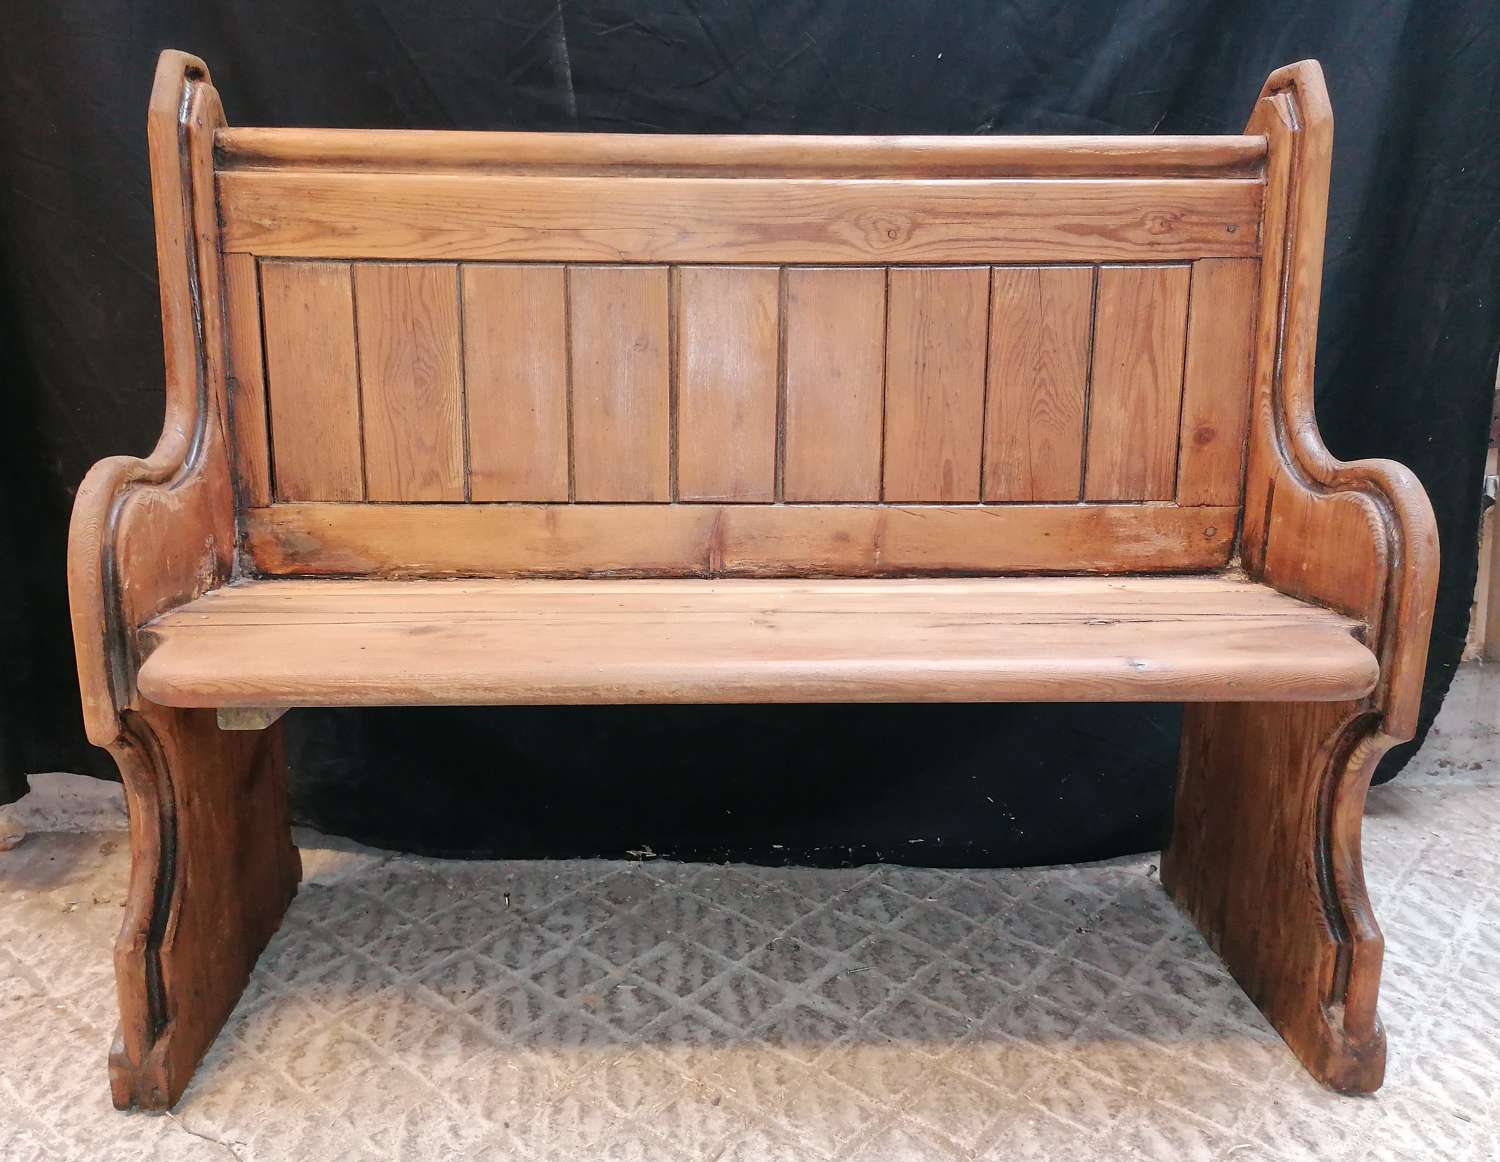 M1409 A SMALL RECLAIMED ORIGINAL VICTORIAN ANTIQUE PINE PEW